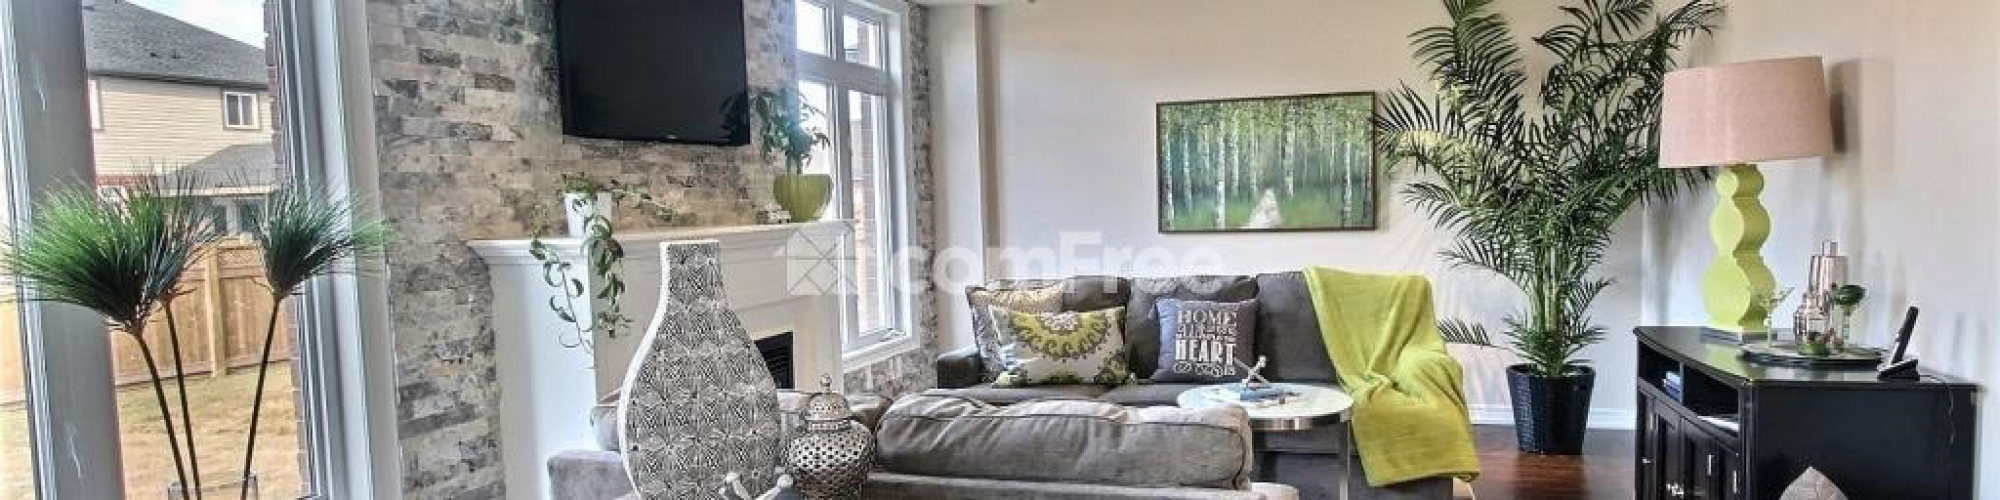 niagara-on-the-lake-staging-and-interior-design